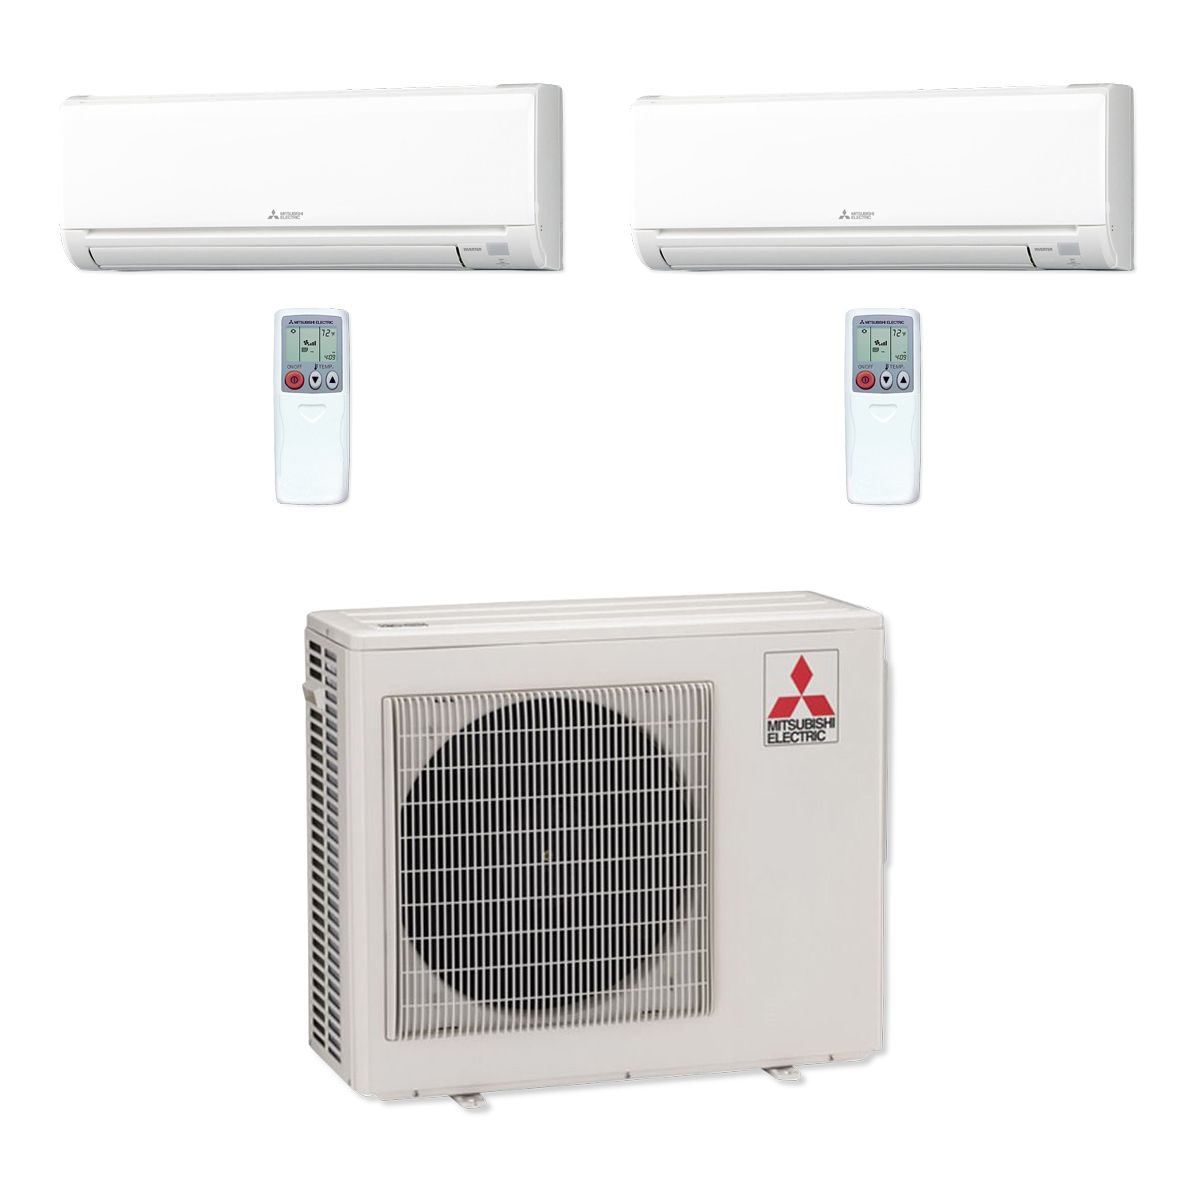 ductless and compasshvac compass as i best chicagoland heat by system conditioning pumps condo heating indoor cooling installed unit on see of part bedroom multi in zone a images mitsubishi with sensor air